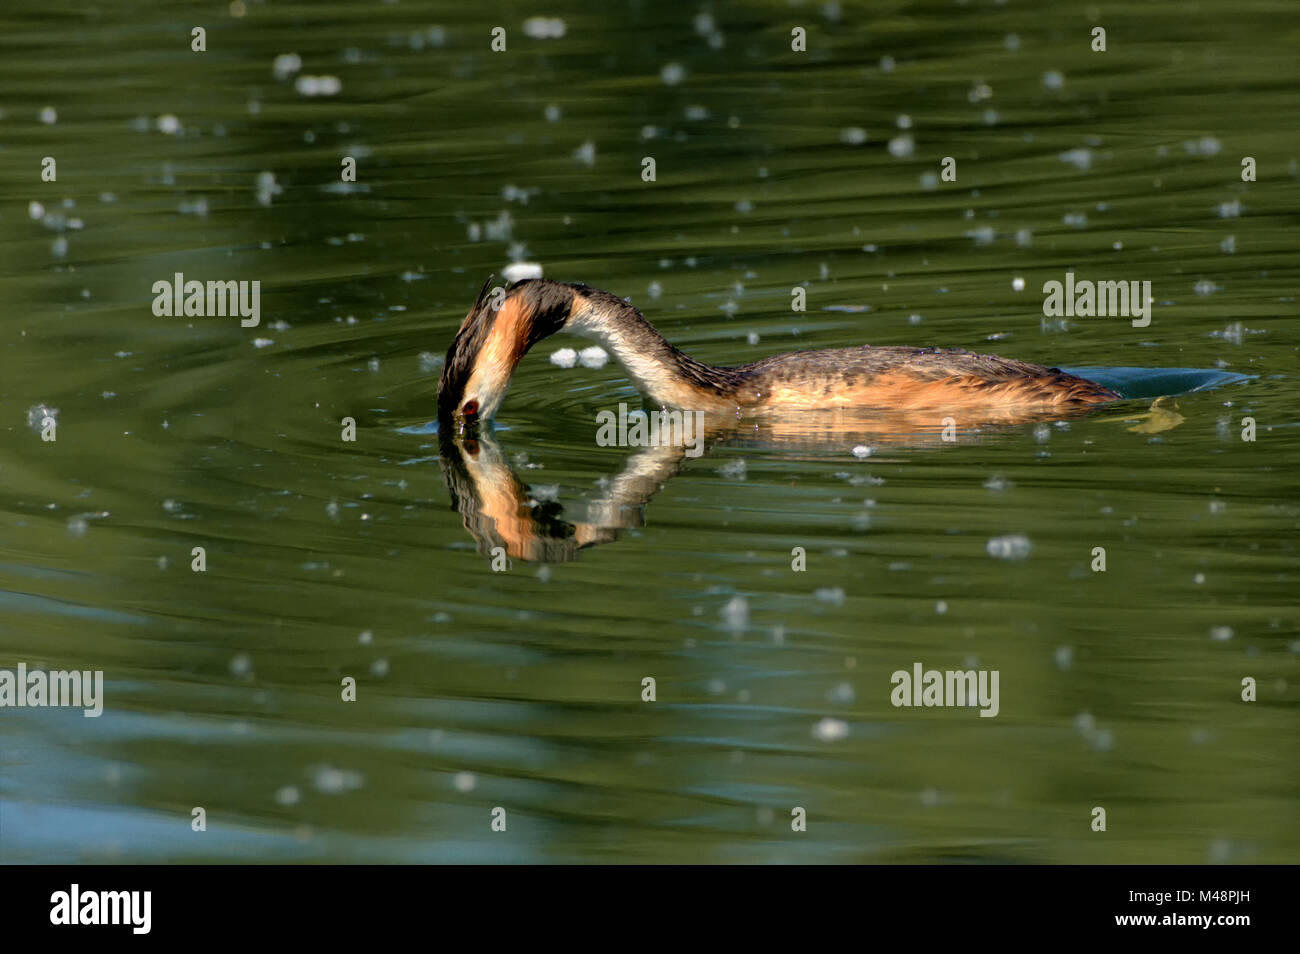 Great crested grebe diving - Stock Image